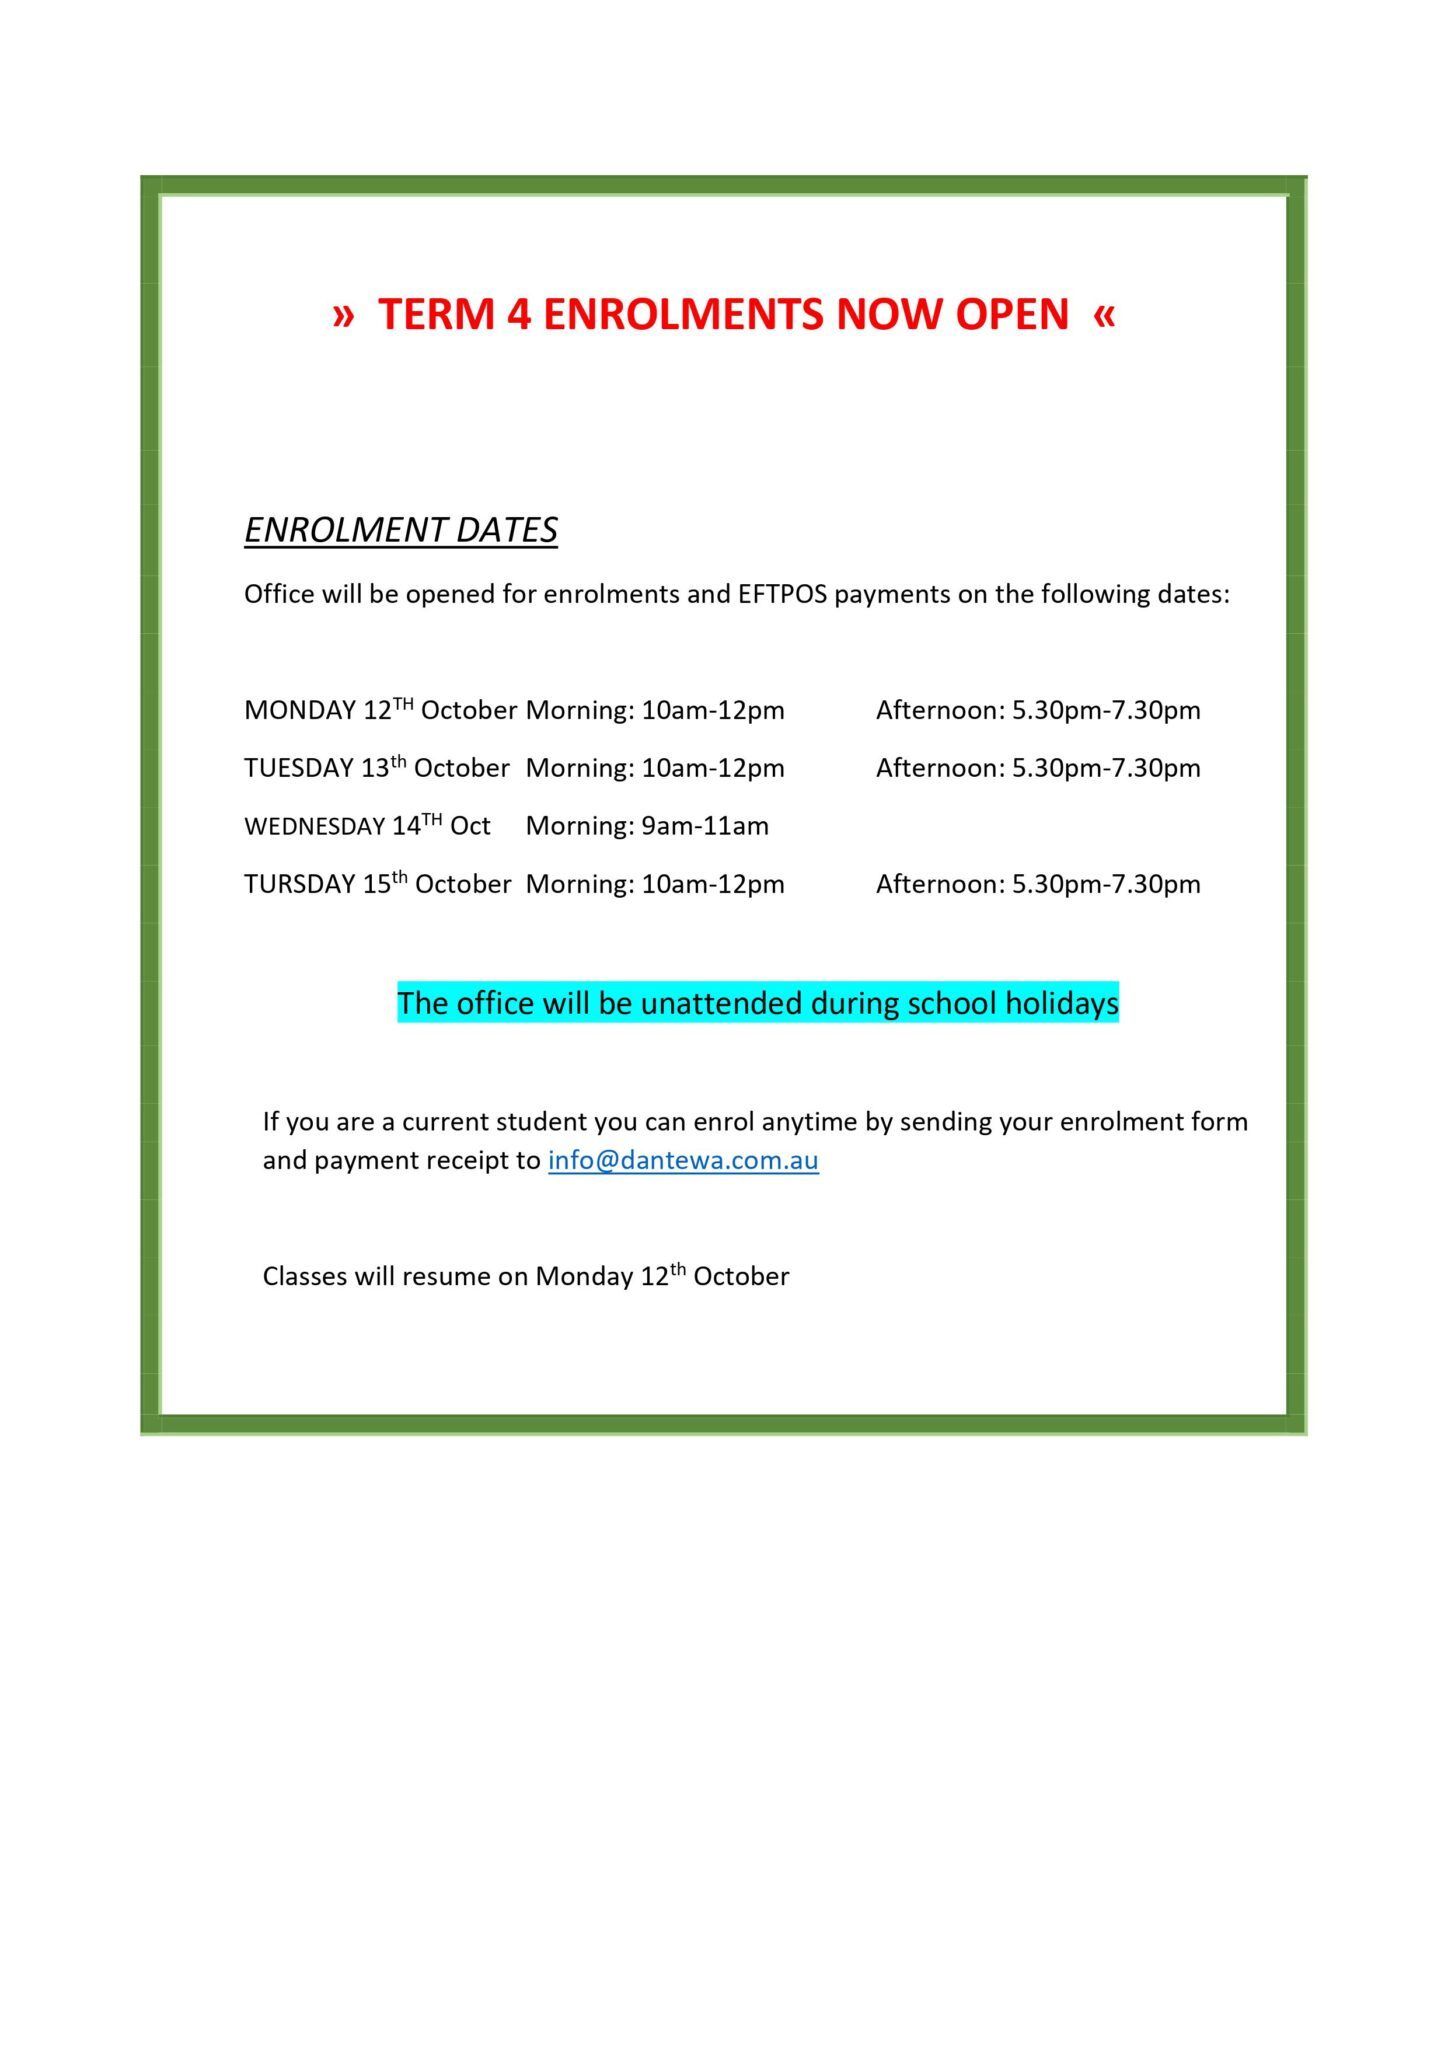 👉  TERM 4 ENROLMENTS ARE NOW OPEN   👈